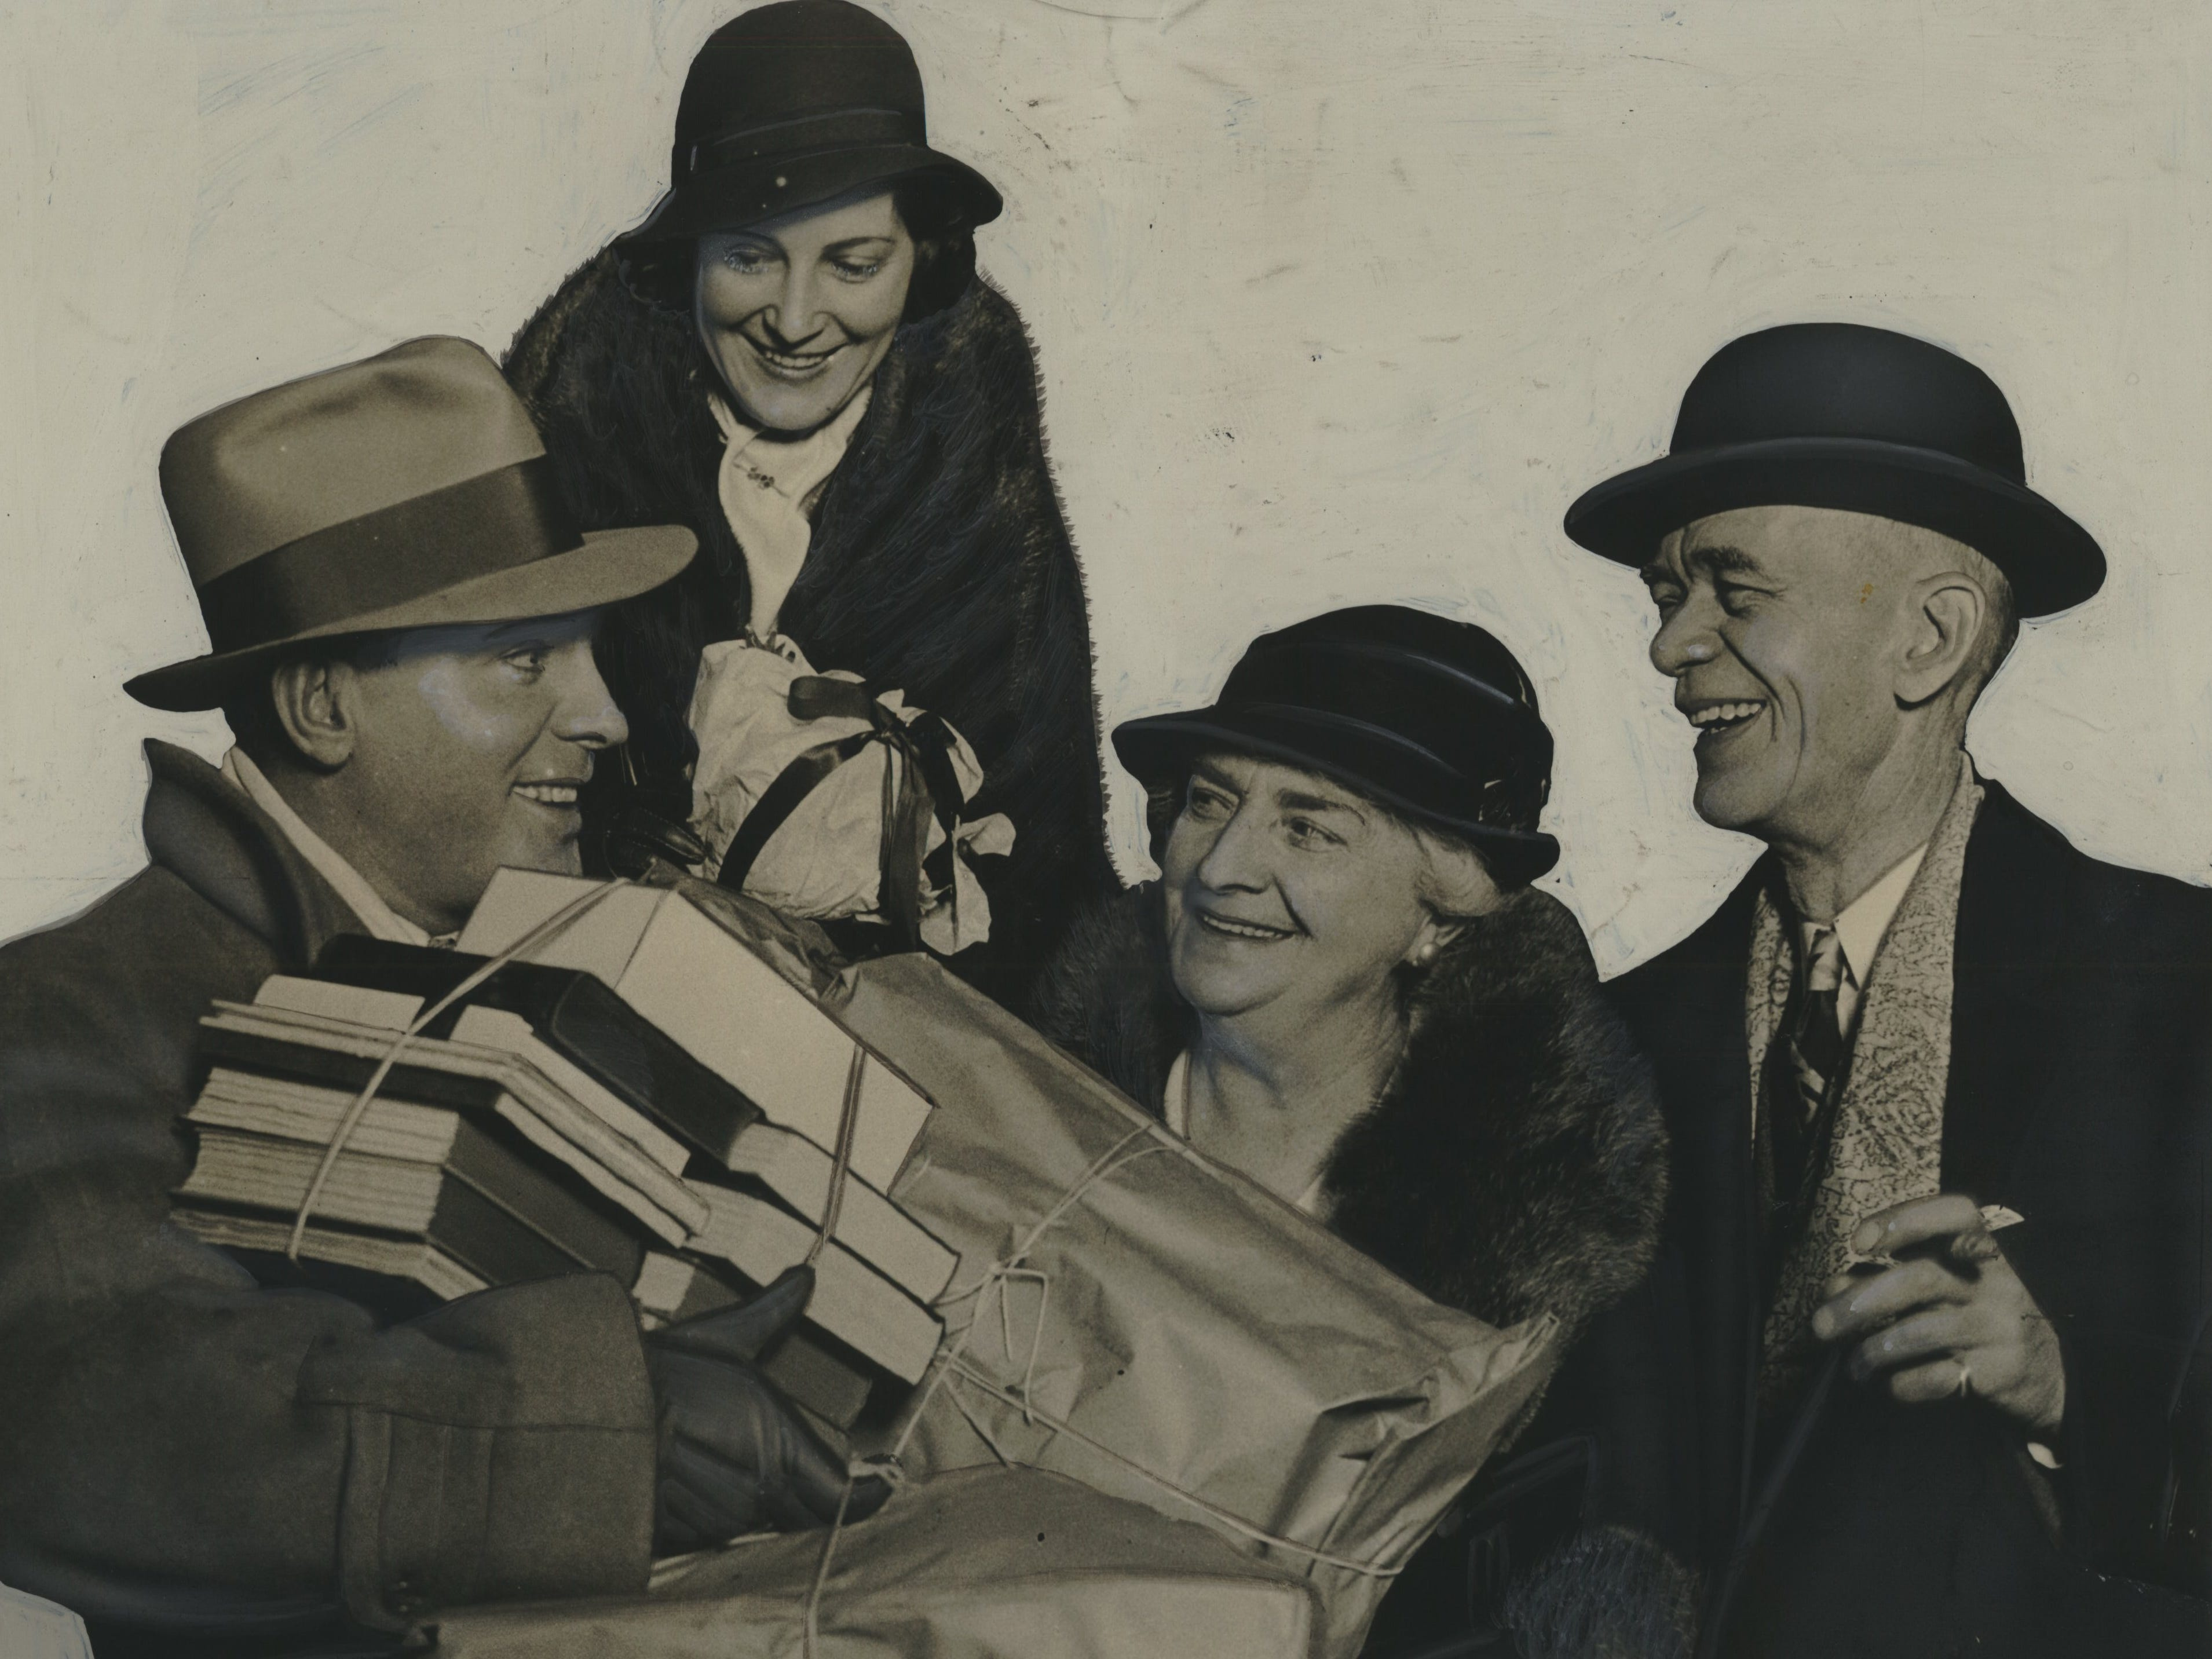 Stage actor turned Hollywood star Pat O'Brien comes home to Milwaukee with his wife, Eloise Taylor, bearing Christmas presents (right) for his parents on Dec. 24, 1932. This slightly altered photo was published in the Dec. 25, 1932, Milwaukee Journal, noting the actor and his wife were spending Christmas with his parents at their house at 1041 N. 14th St.